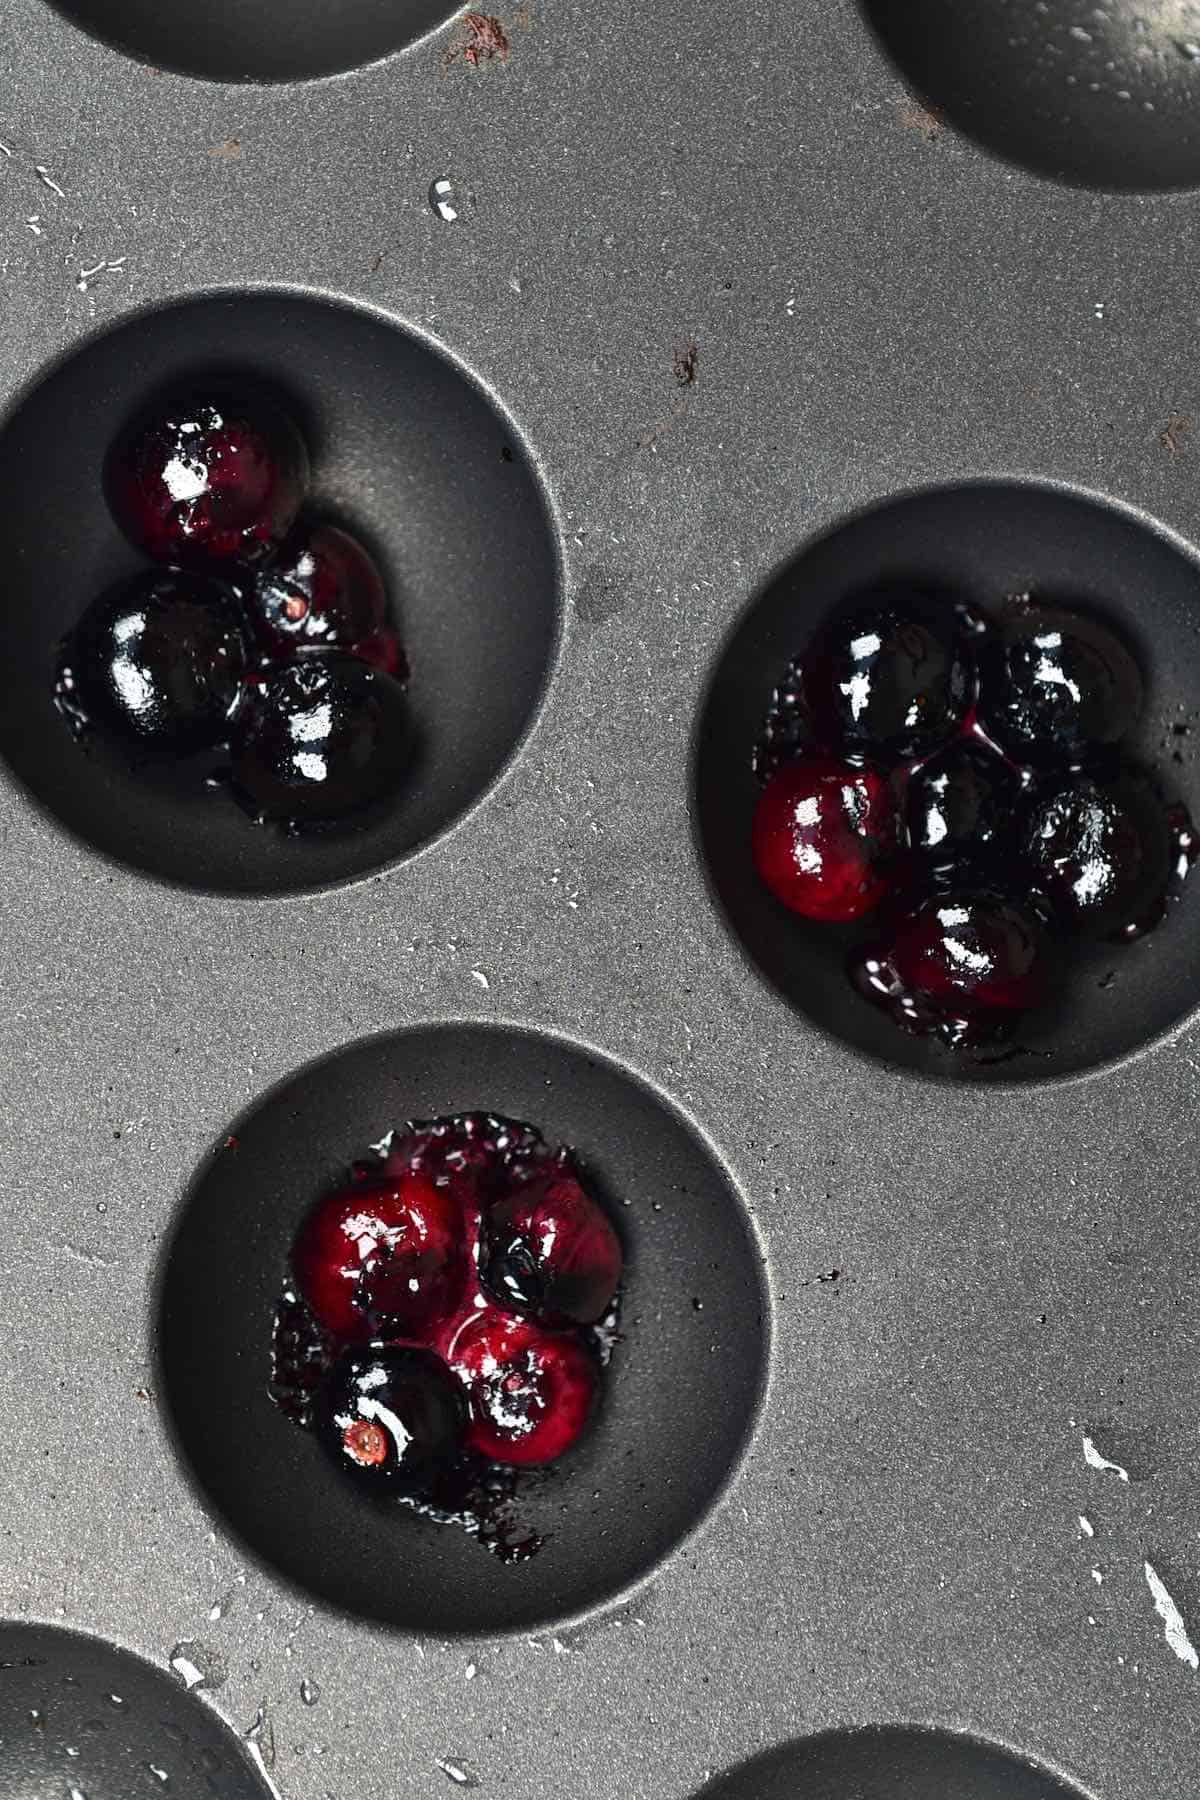 Heating up blueberries